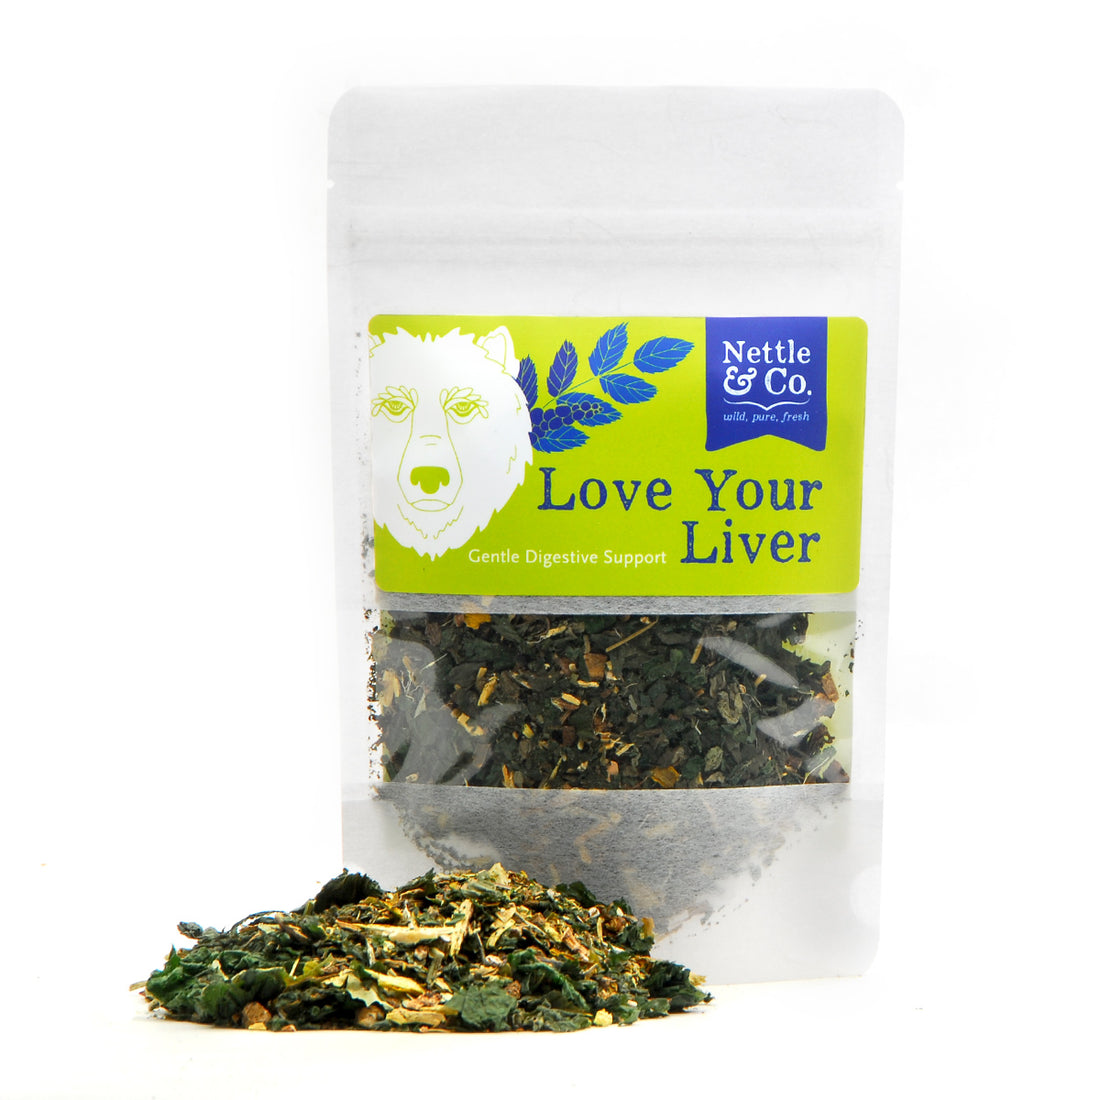 Love Your Liver Tea - ShopTheMakers.com